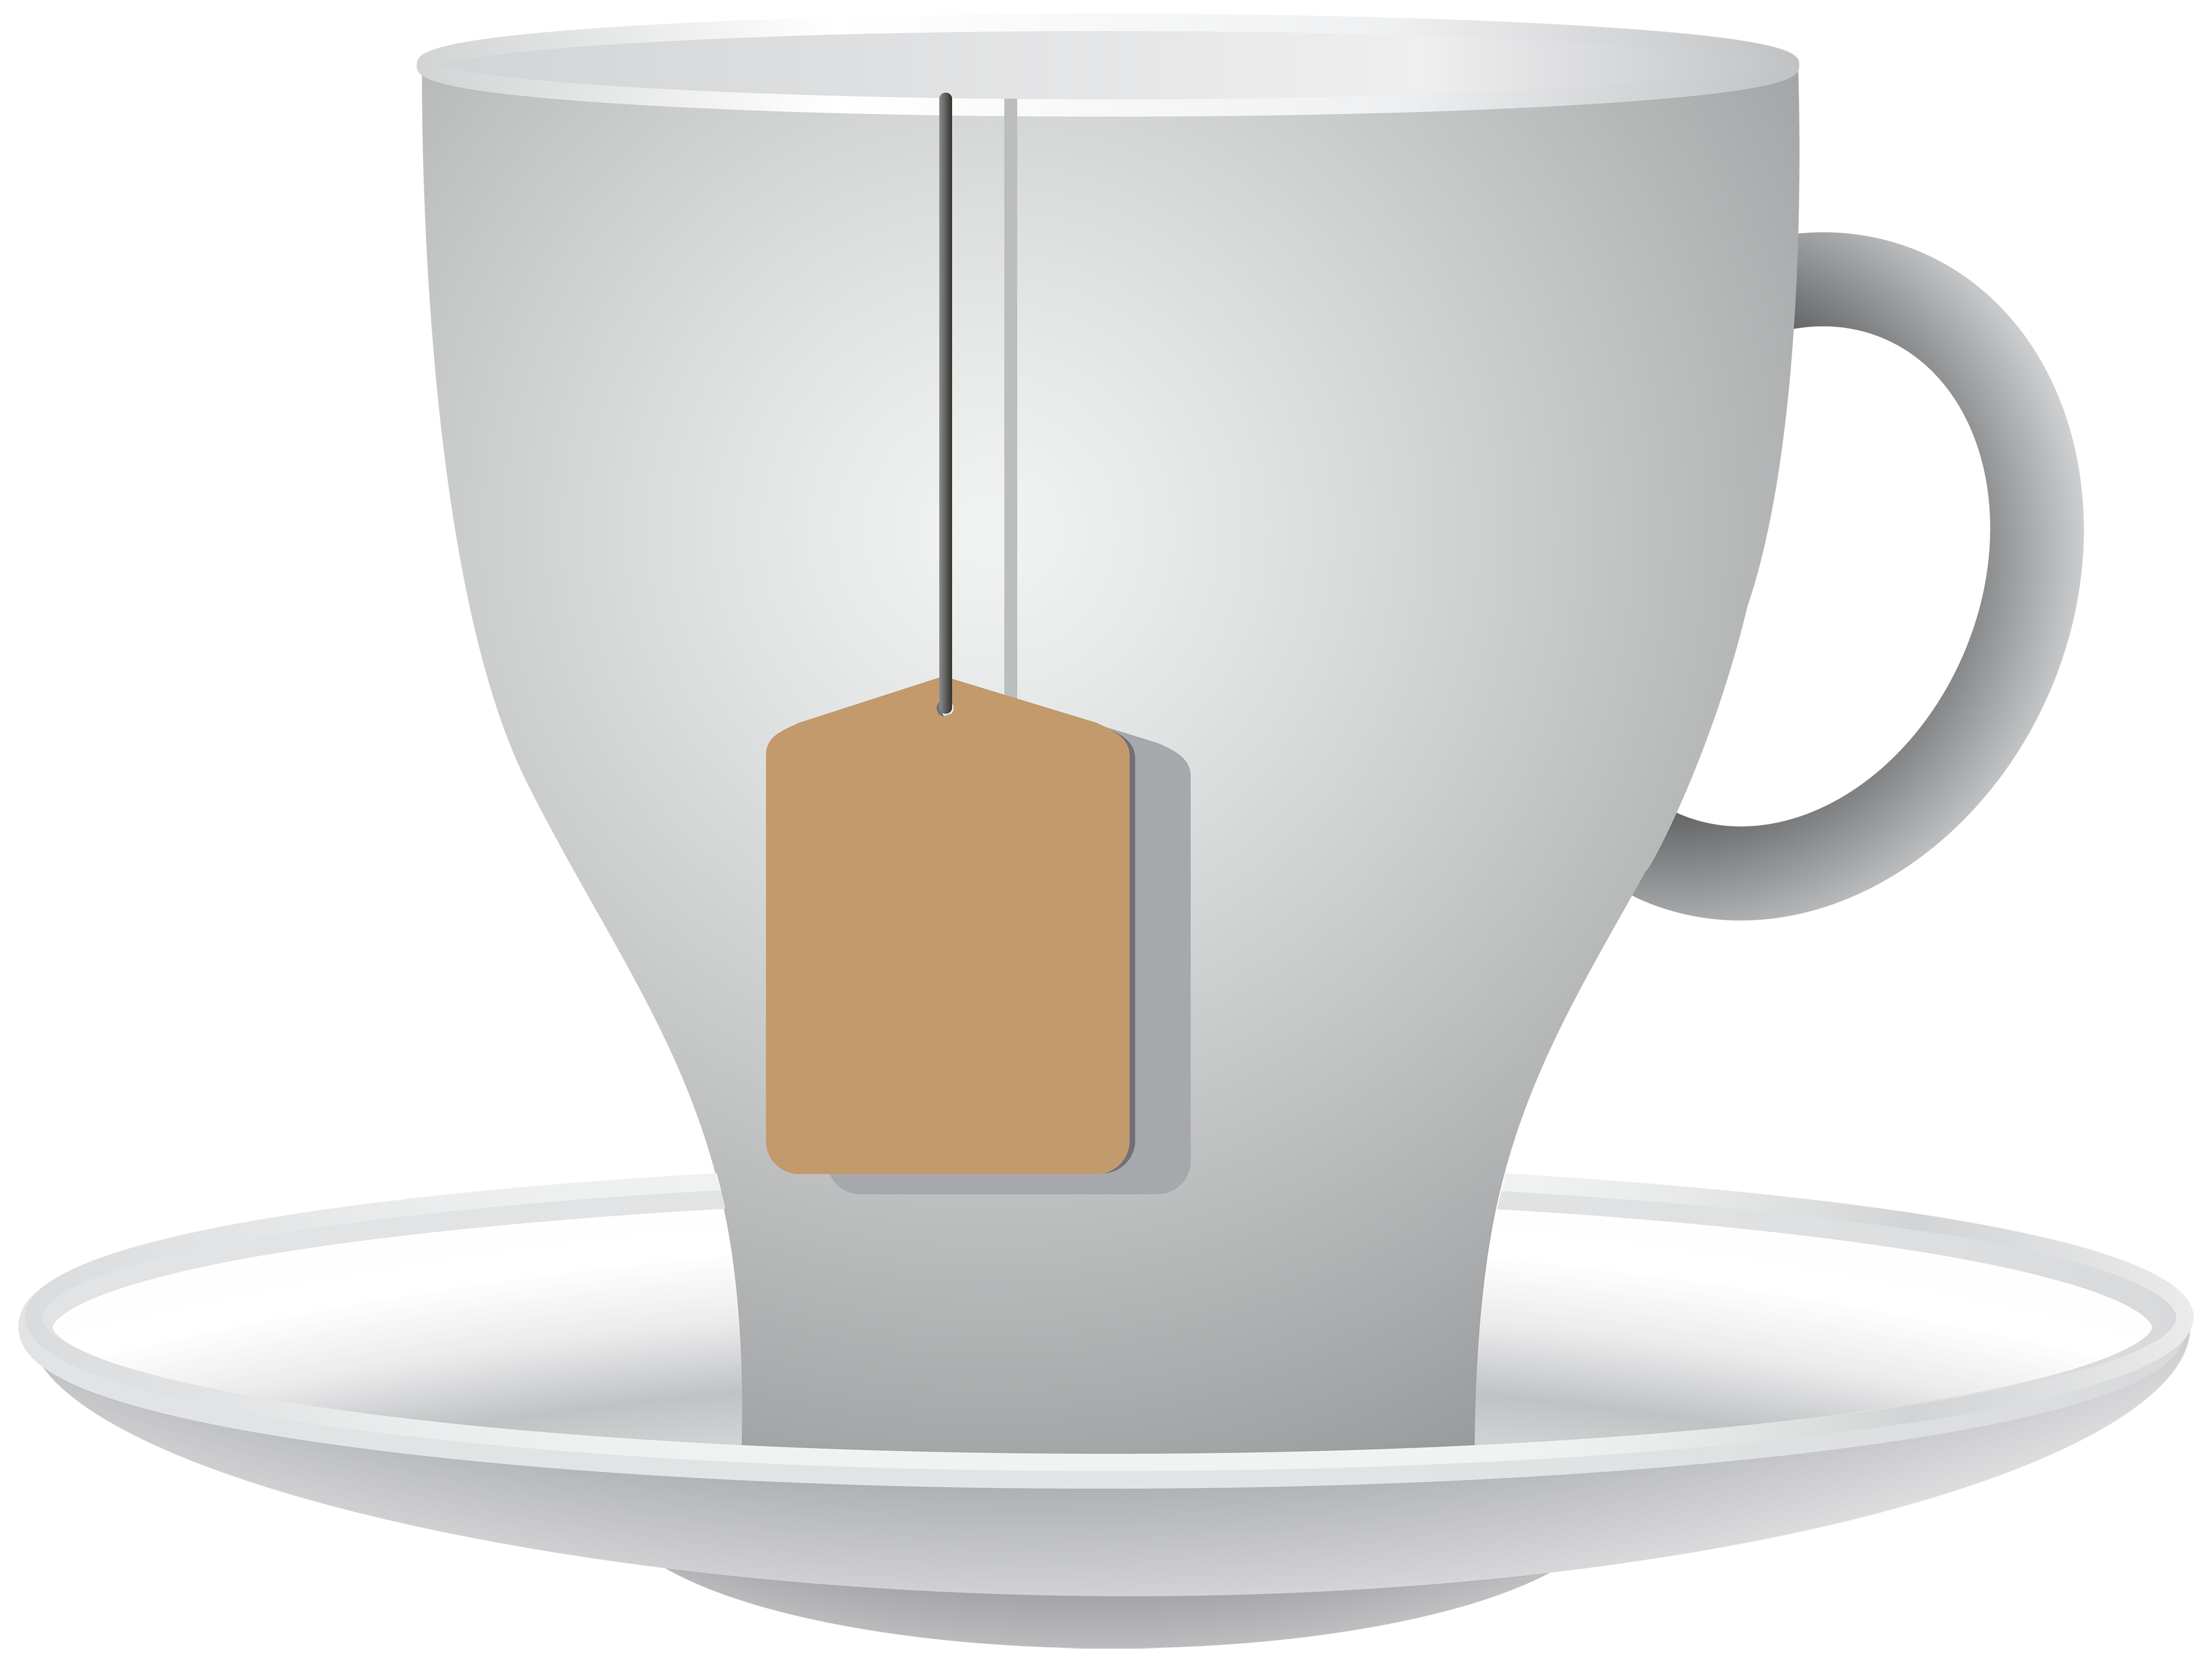 Knife clipart tea. Cup png